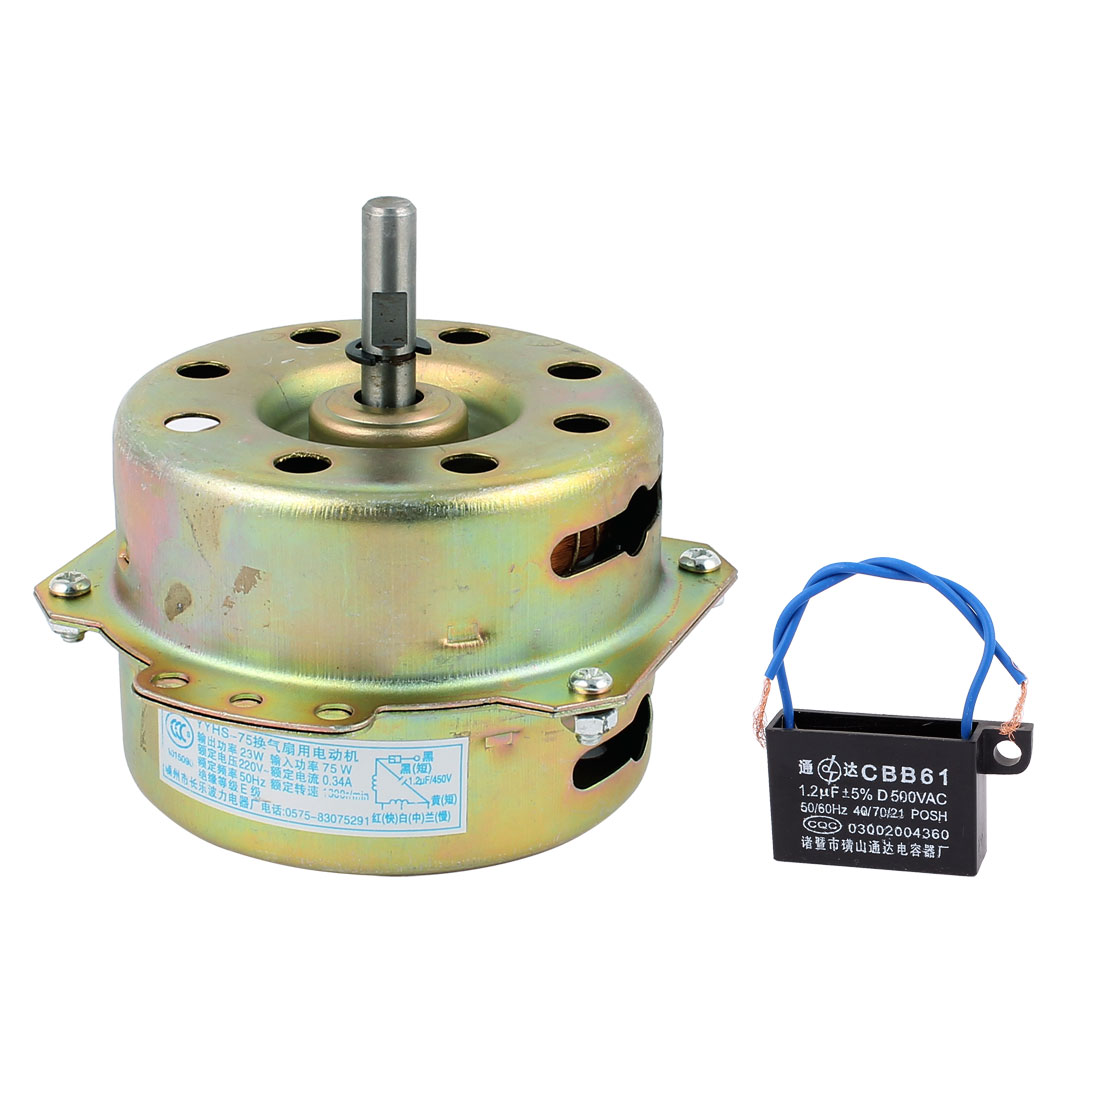 AC 220V 0.34A 1000RPM 8mmx30mm Shaft Dual Bearing Ball Electric Ventilator Fan Motor